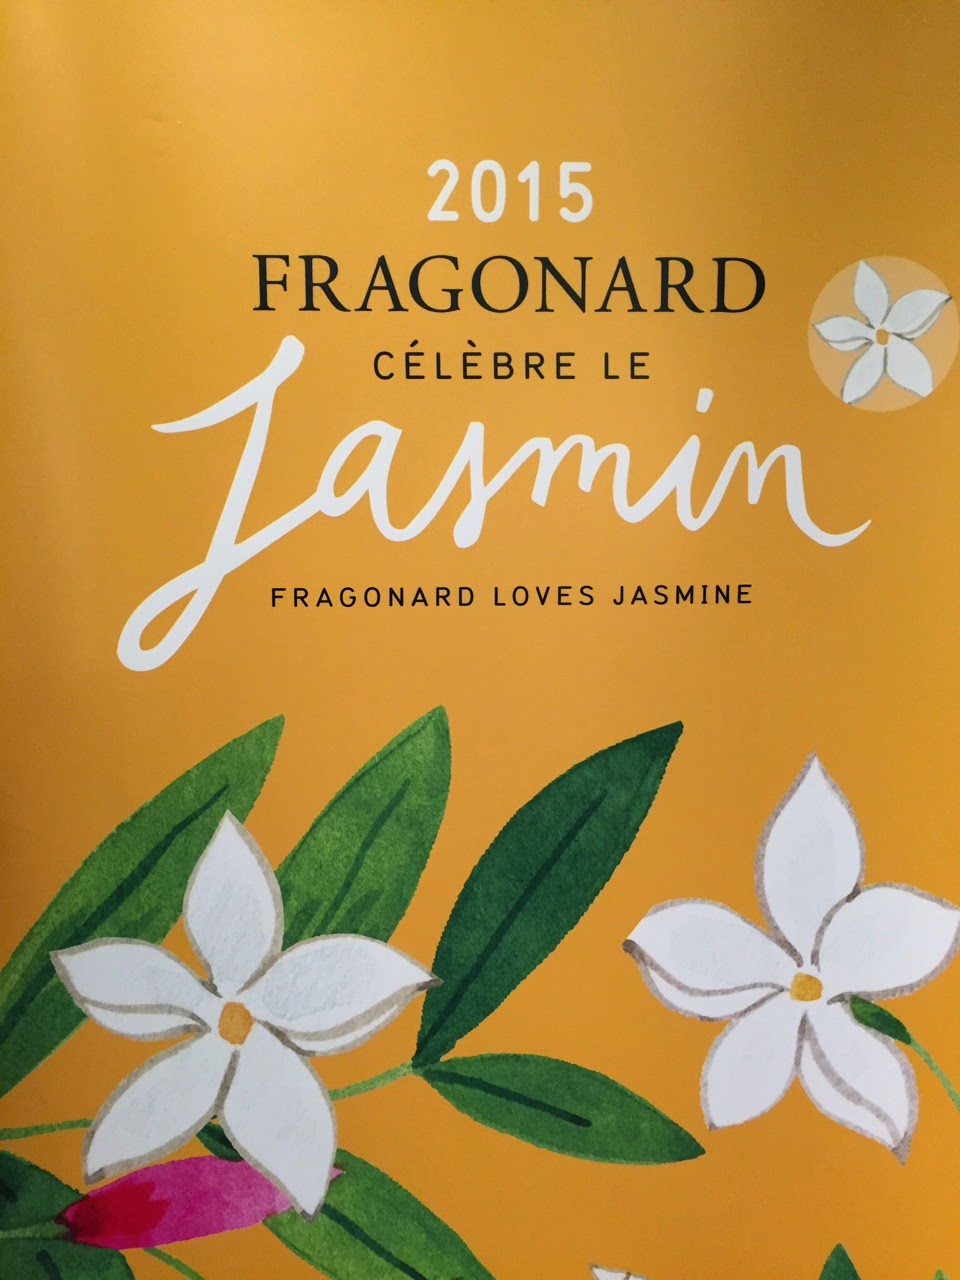 Fragonard celebrates jasmine in 2015